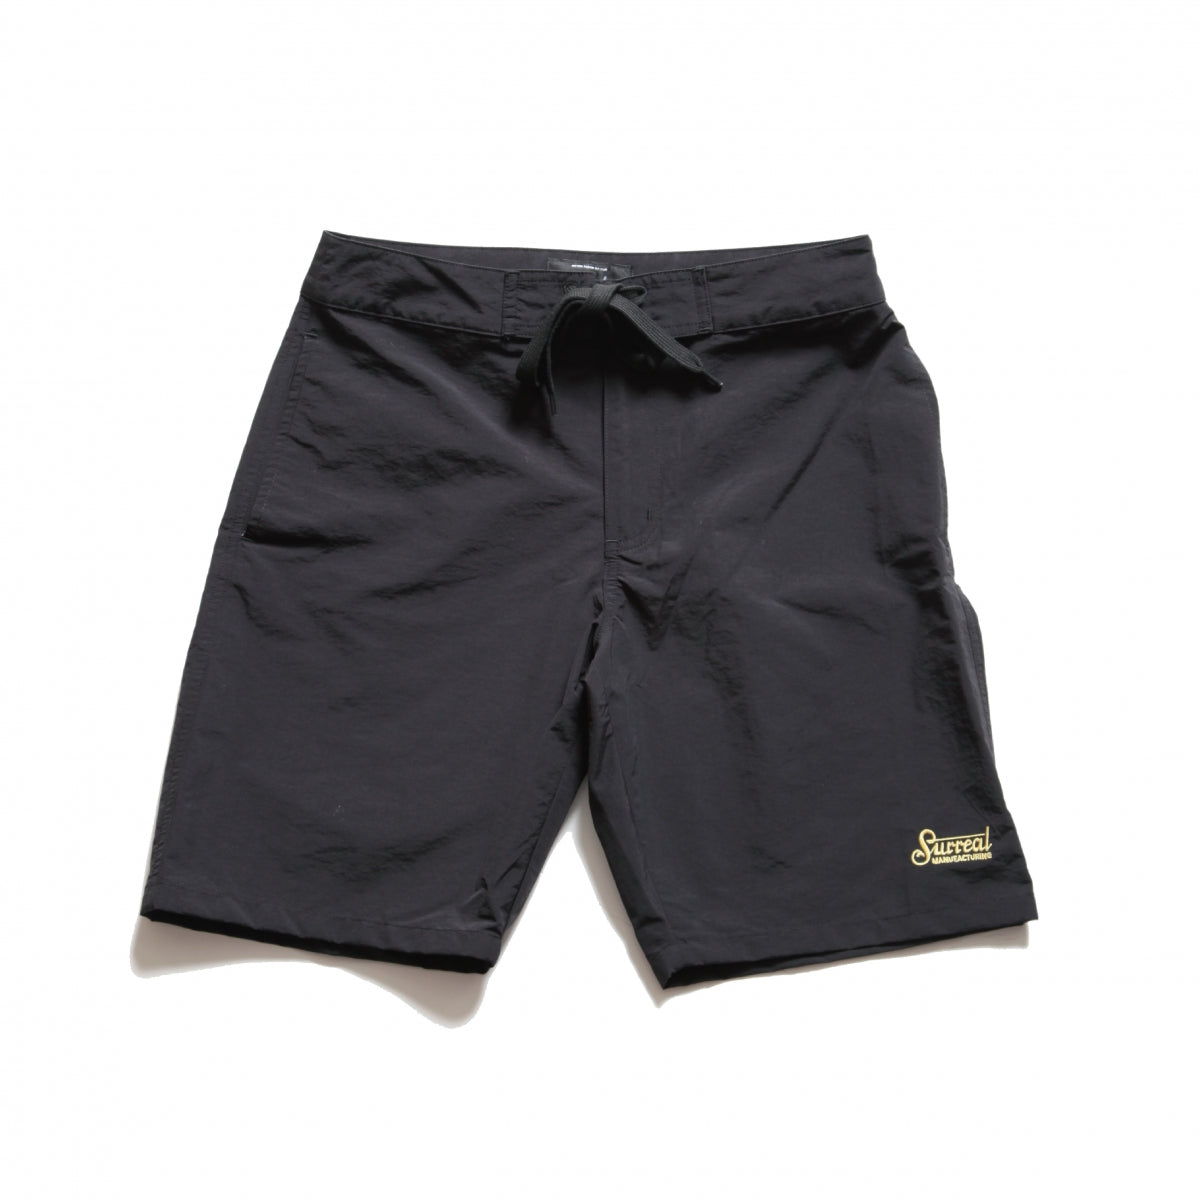 King_Board Shorts